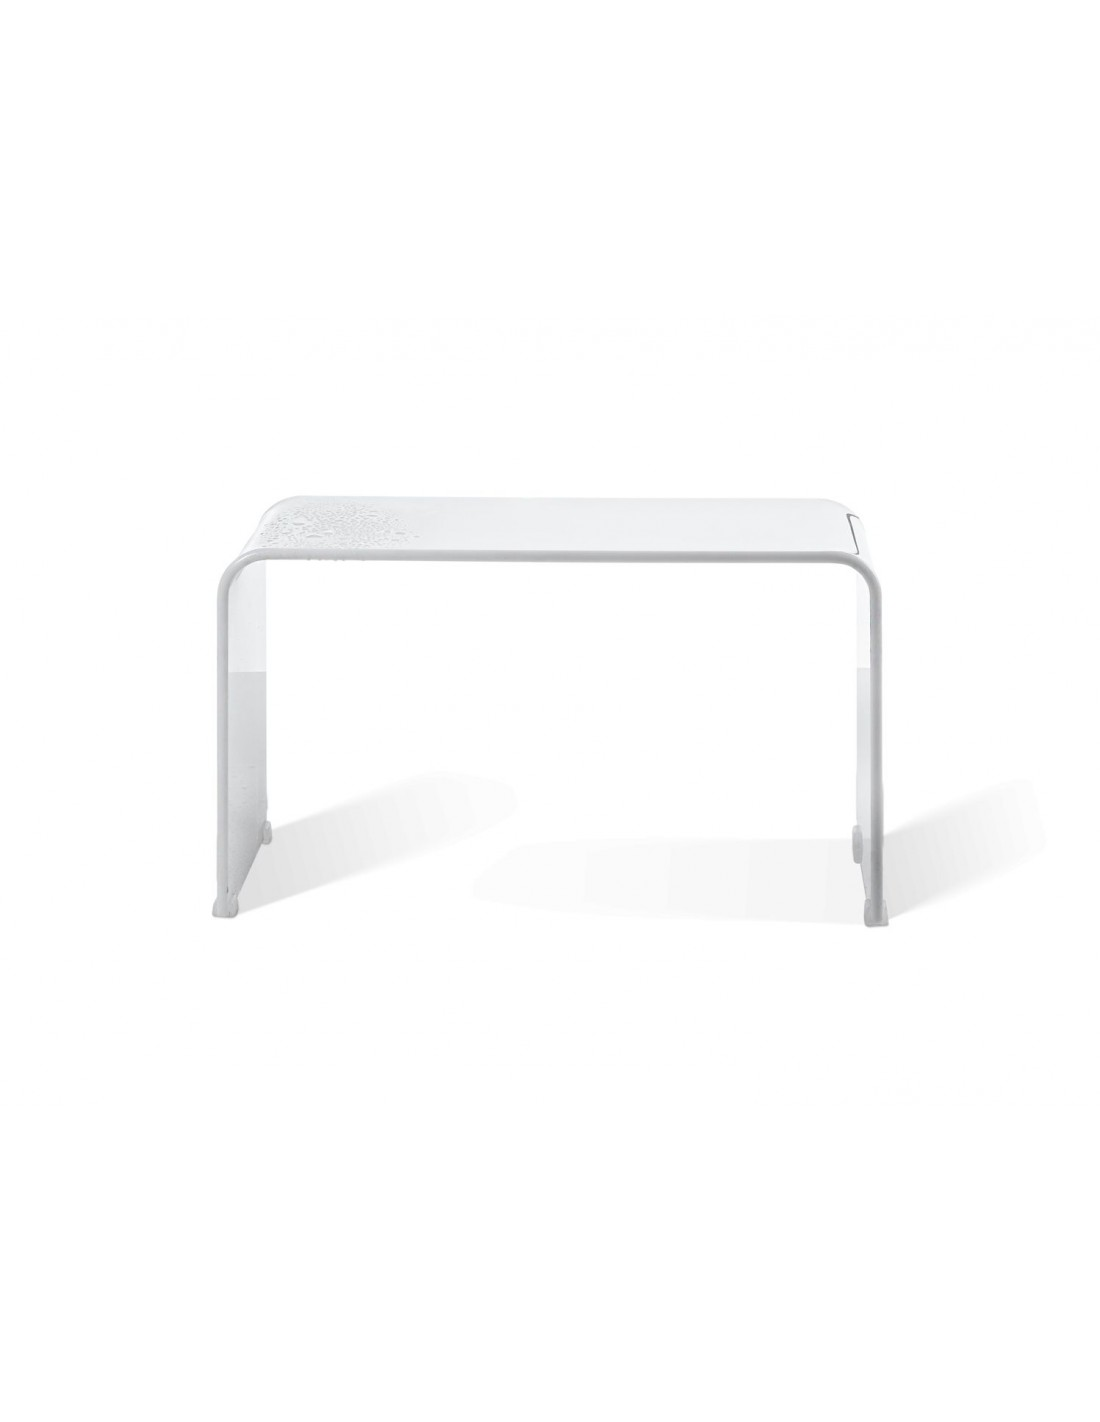 banc douche decor walther en acrylique blanc. Black Bedroom Furniture Sets. Home Design Ideas